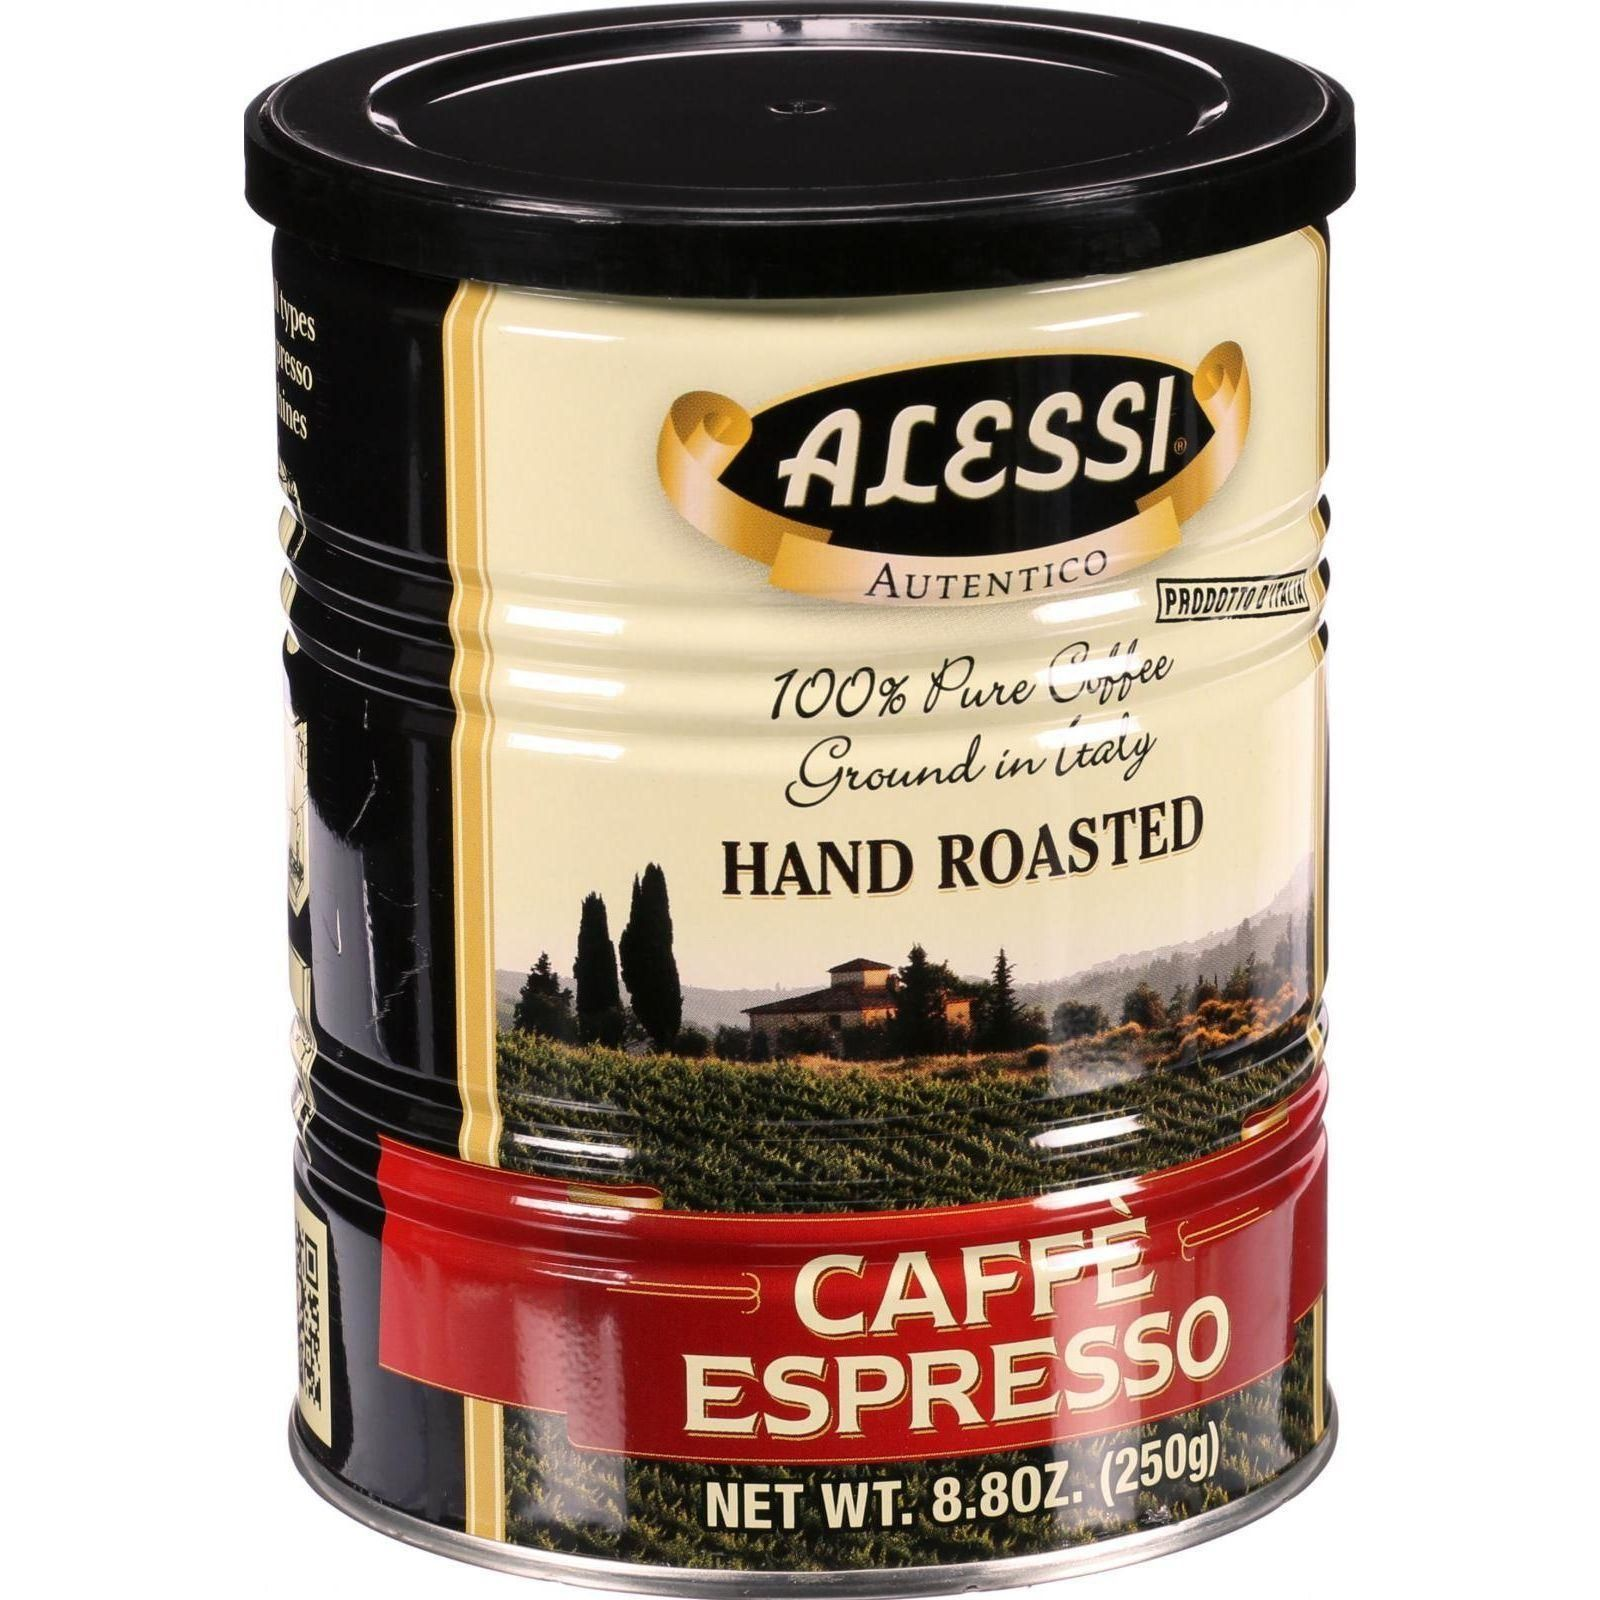 Alessi Caffe Espresso Is Made From The Finest Hand-roasted